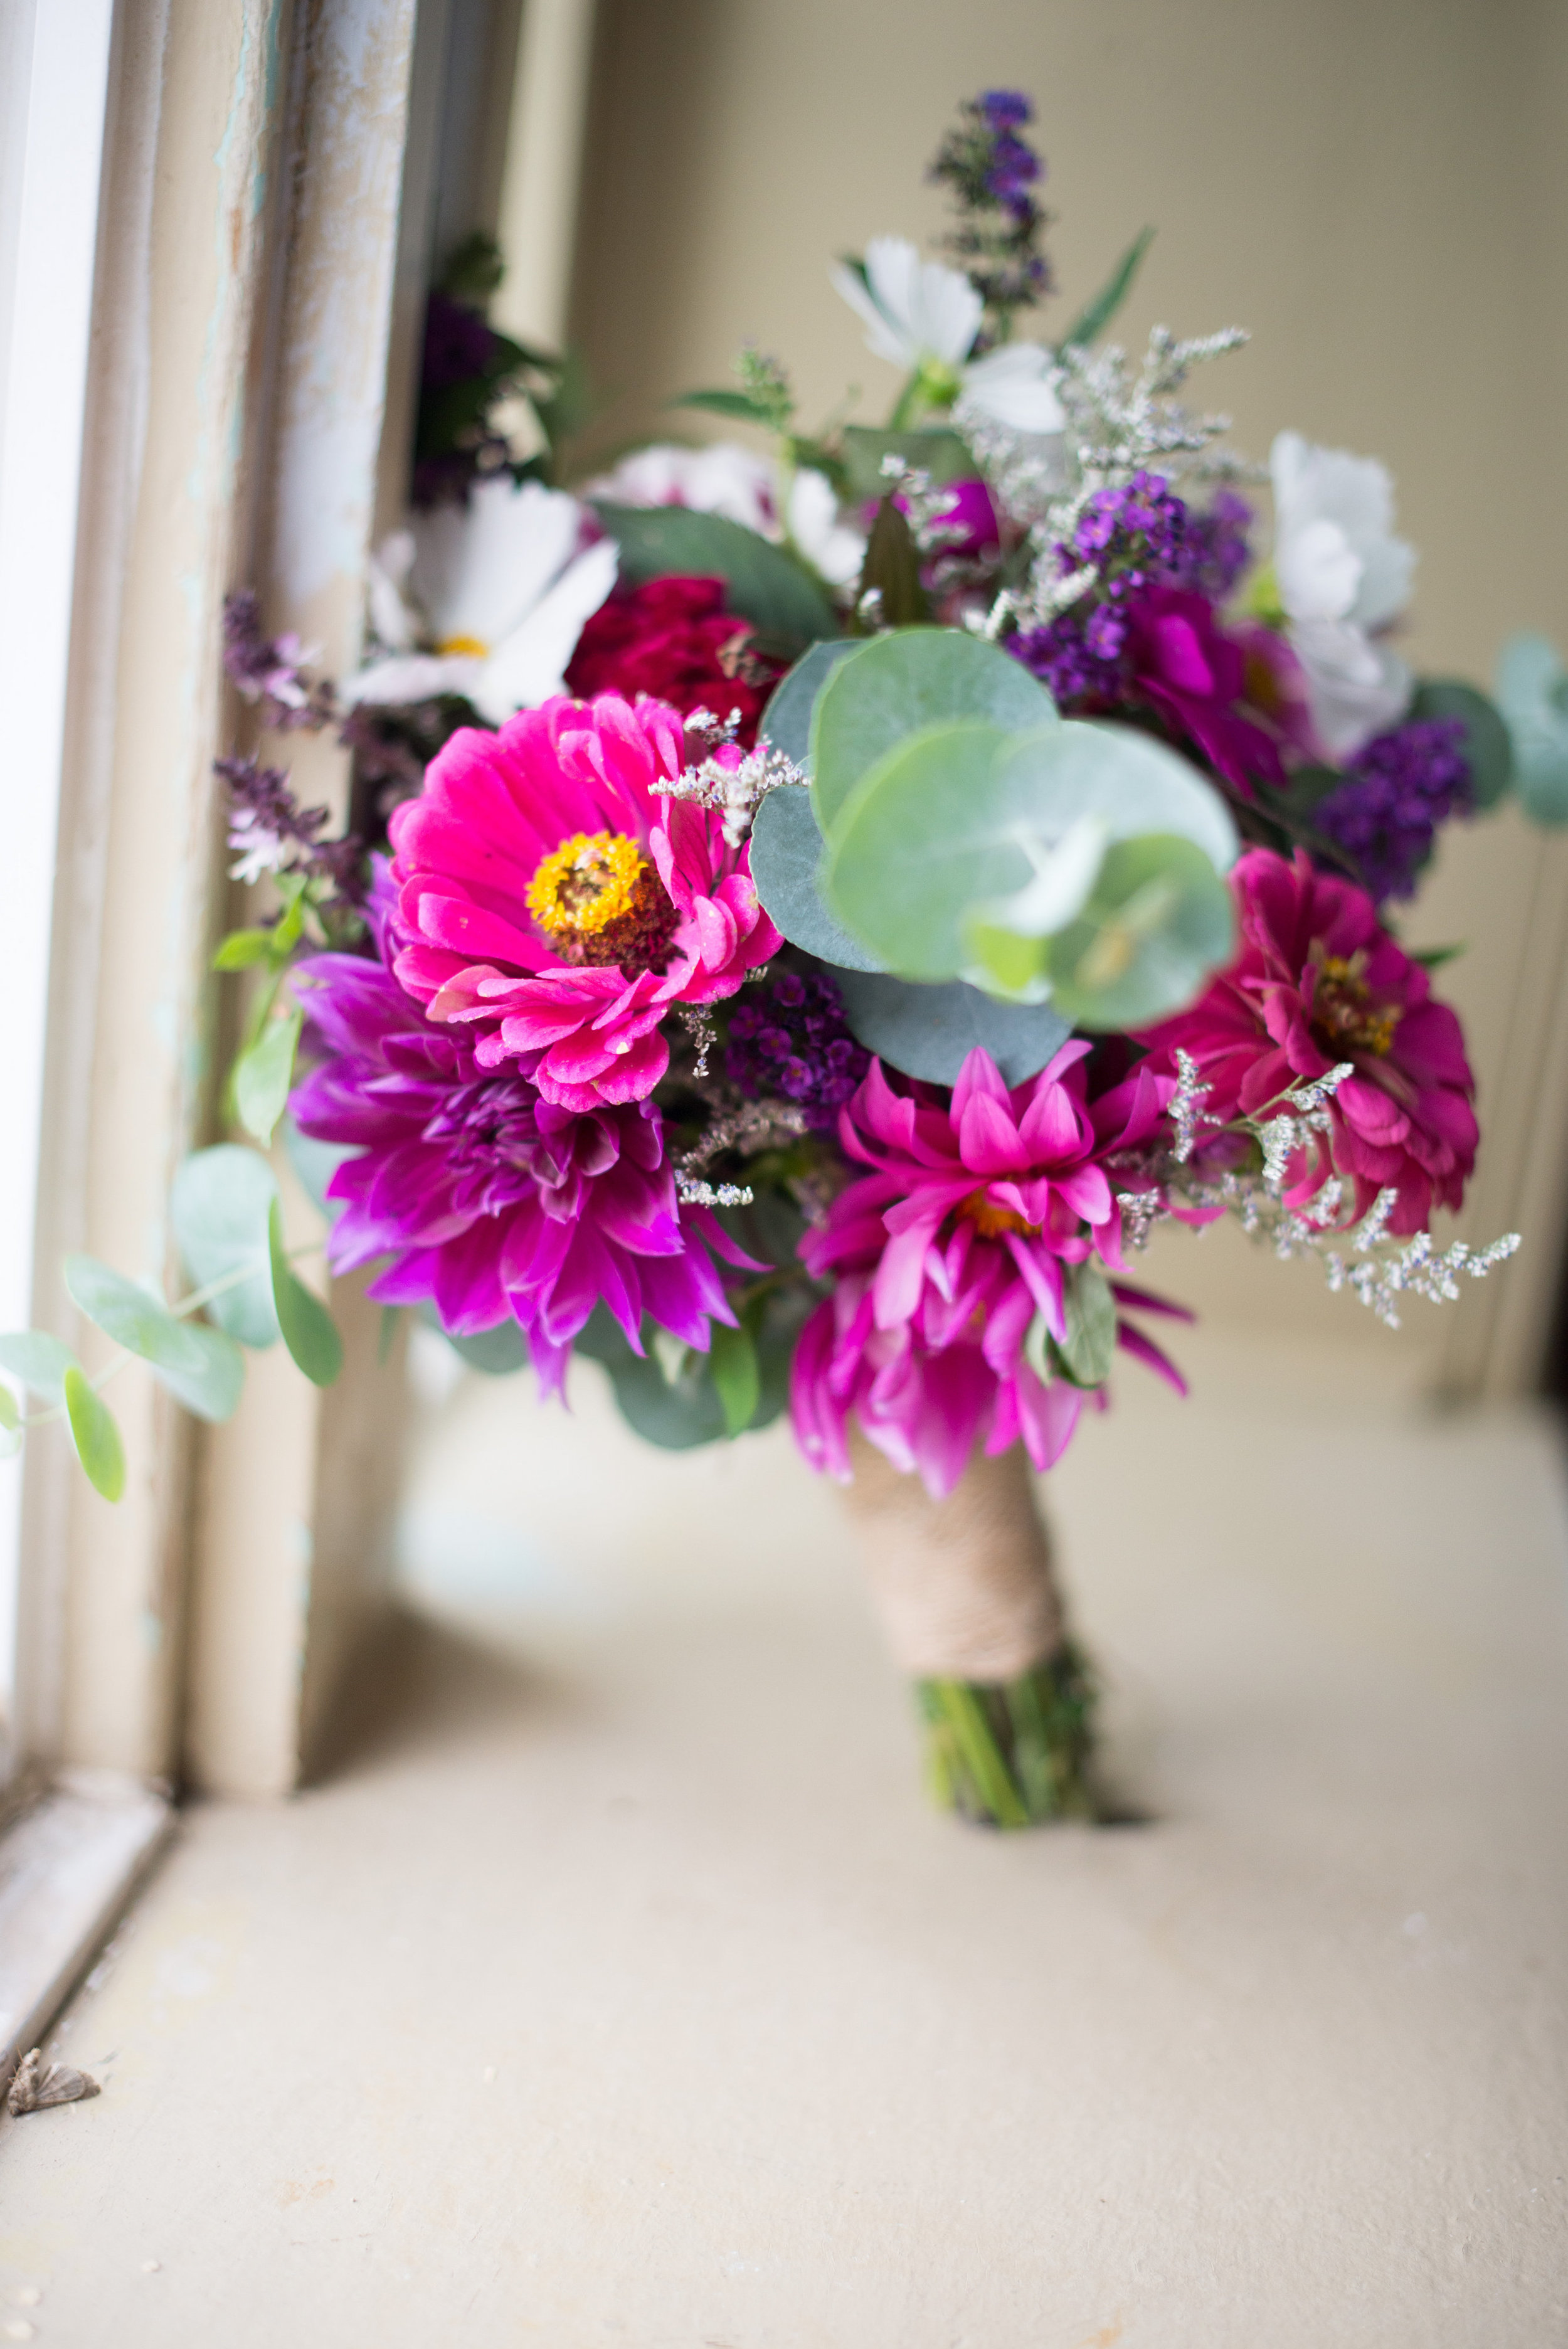 Bridal bouquet created using flowers grown at the Manor